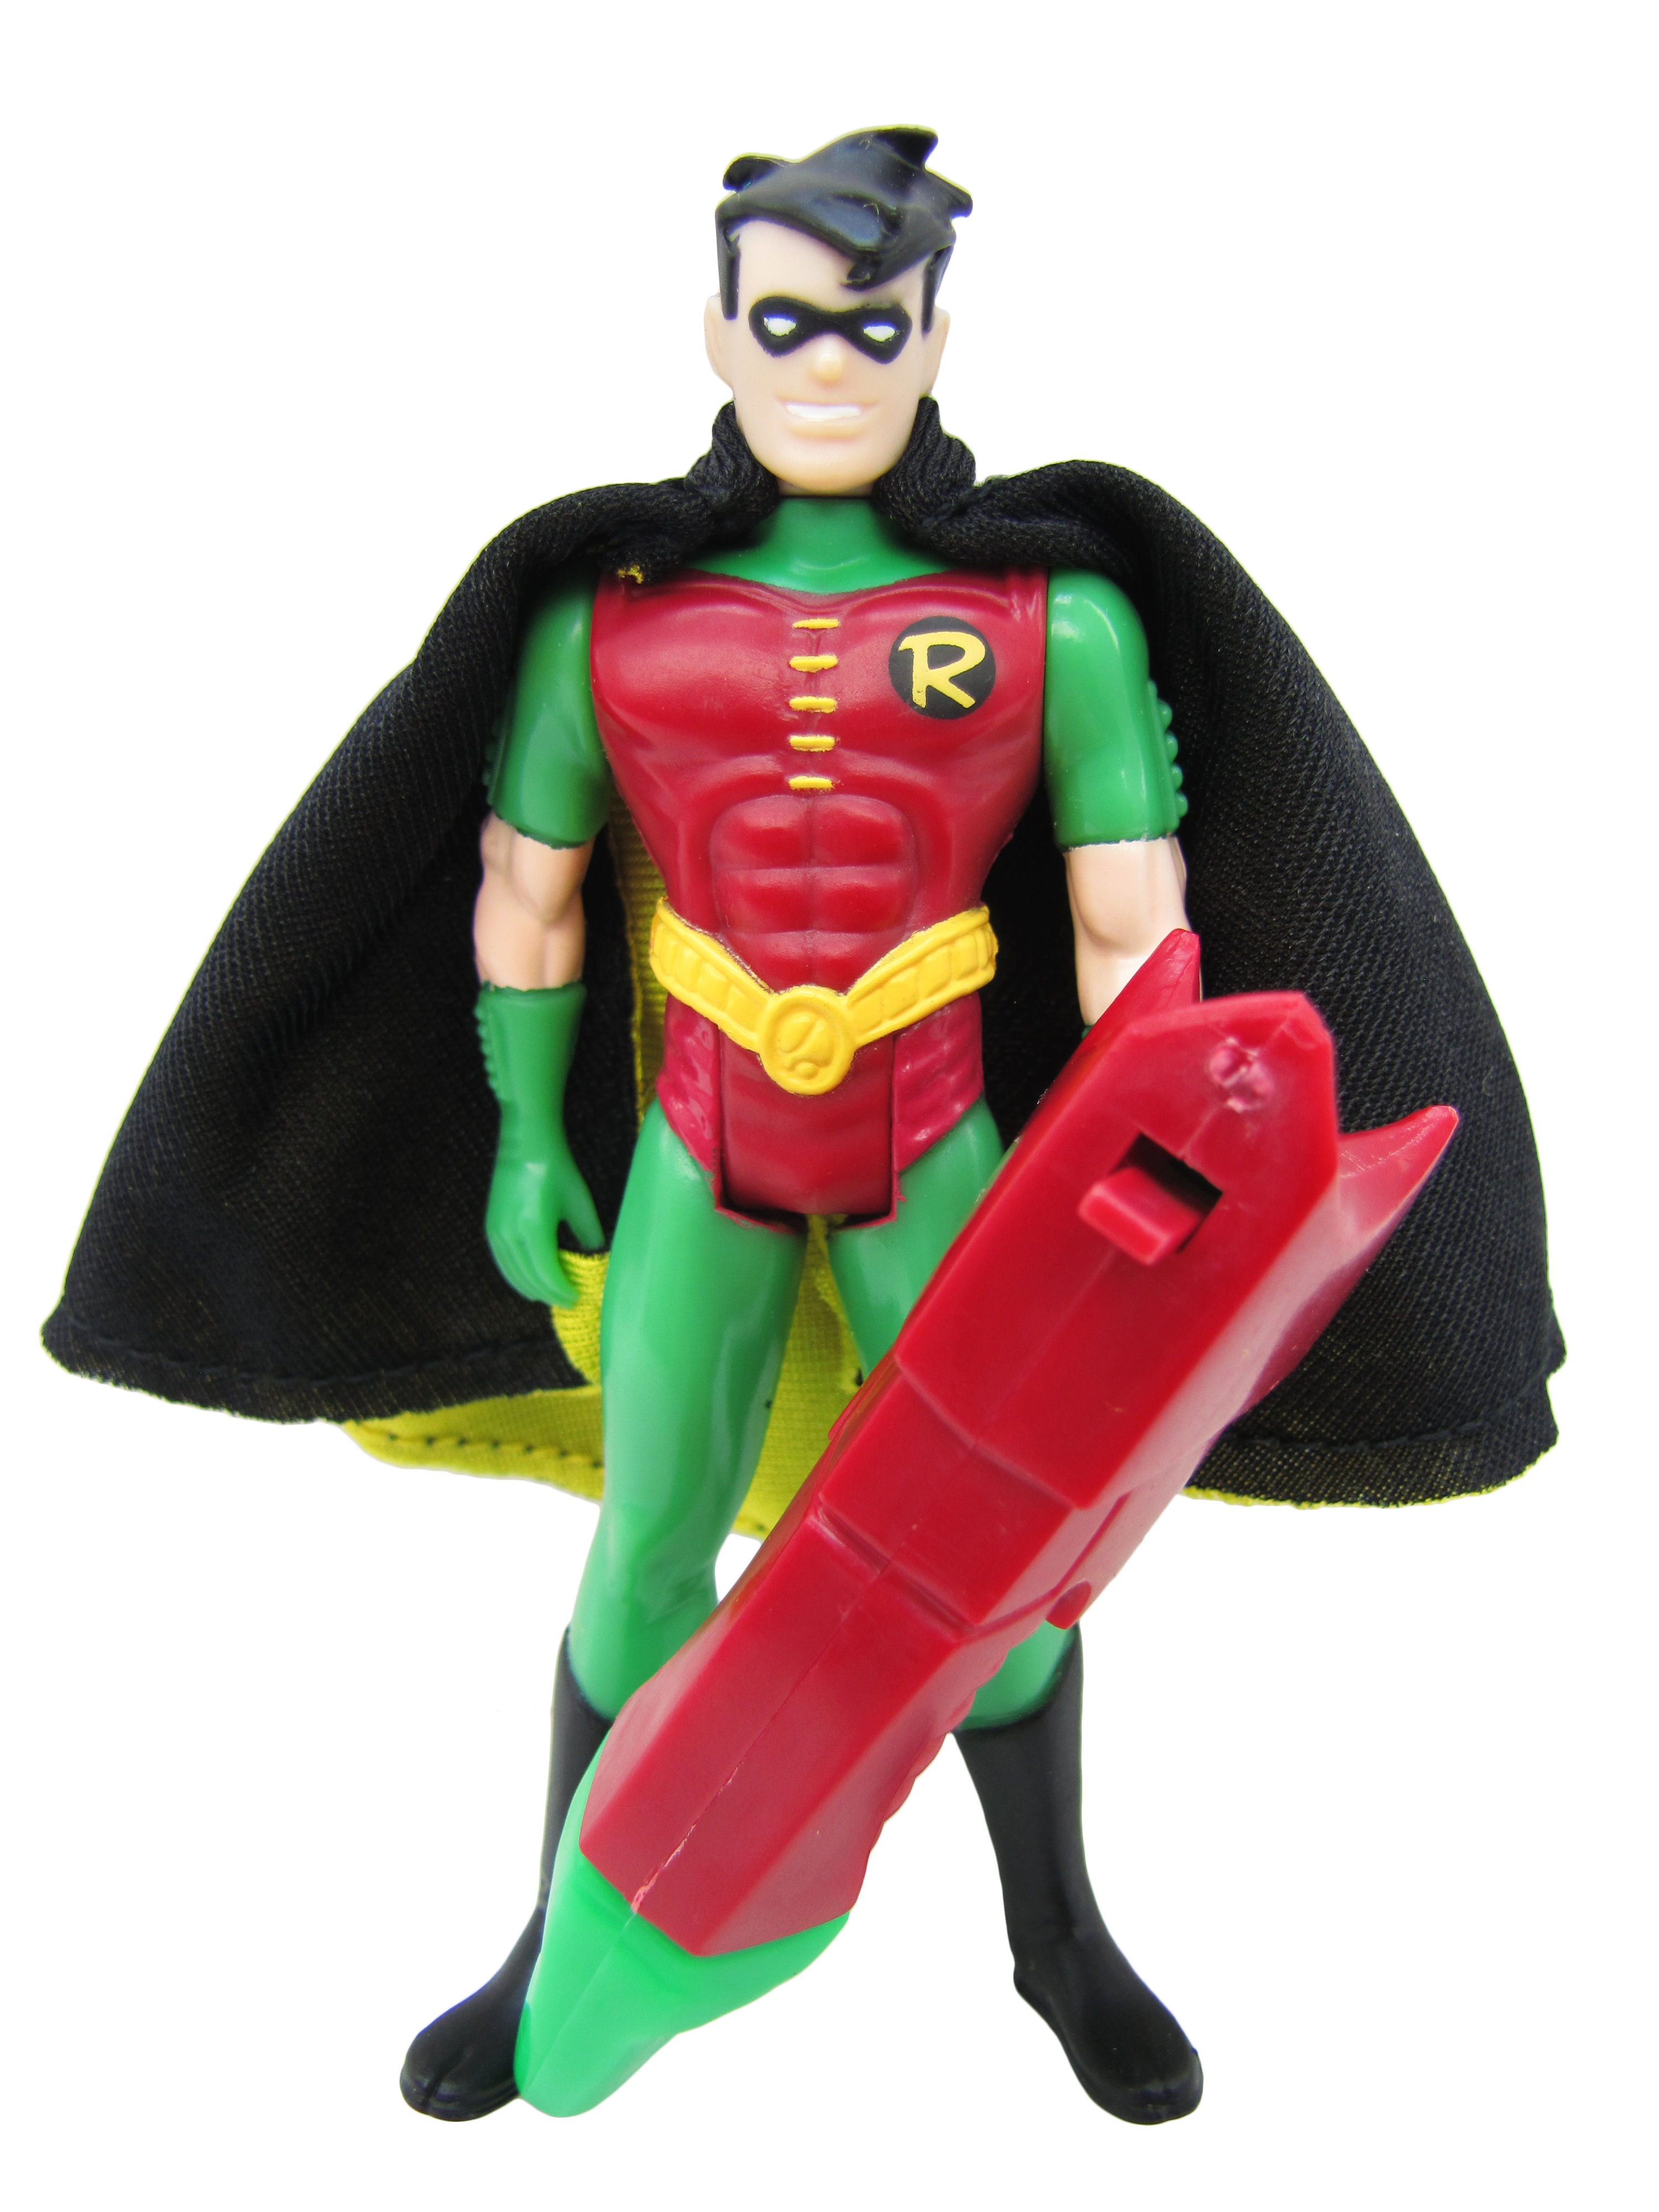 2001 Batman Mission Masters REVENGE OF THE PENGUIN ROBIN Complete Mint